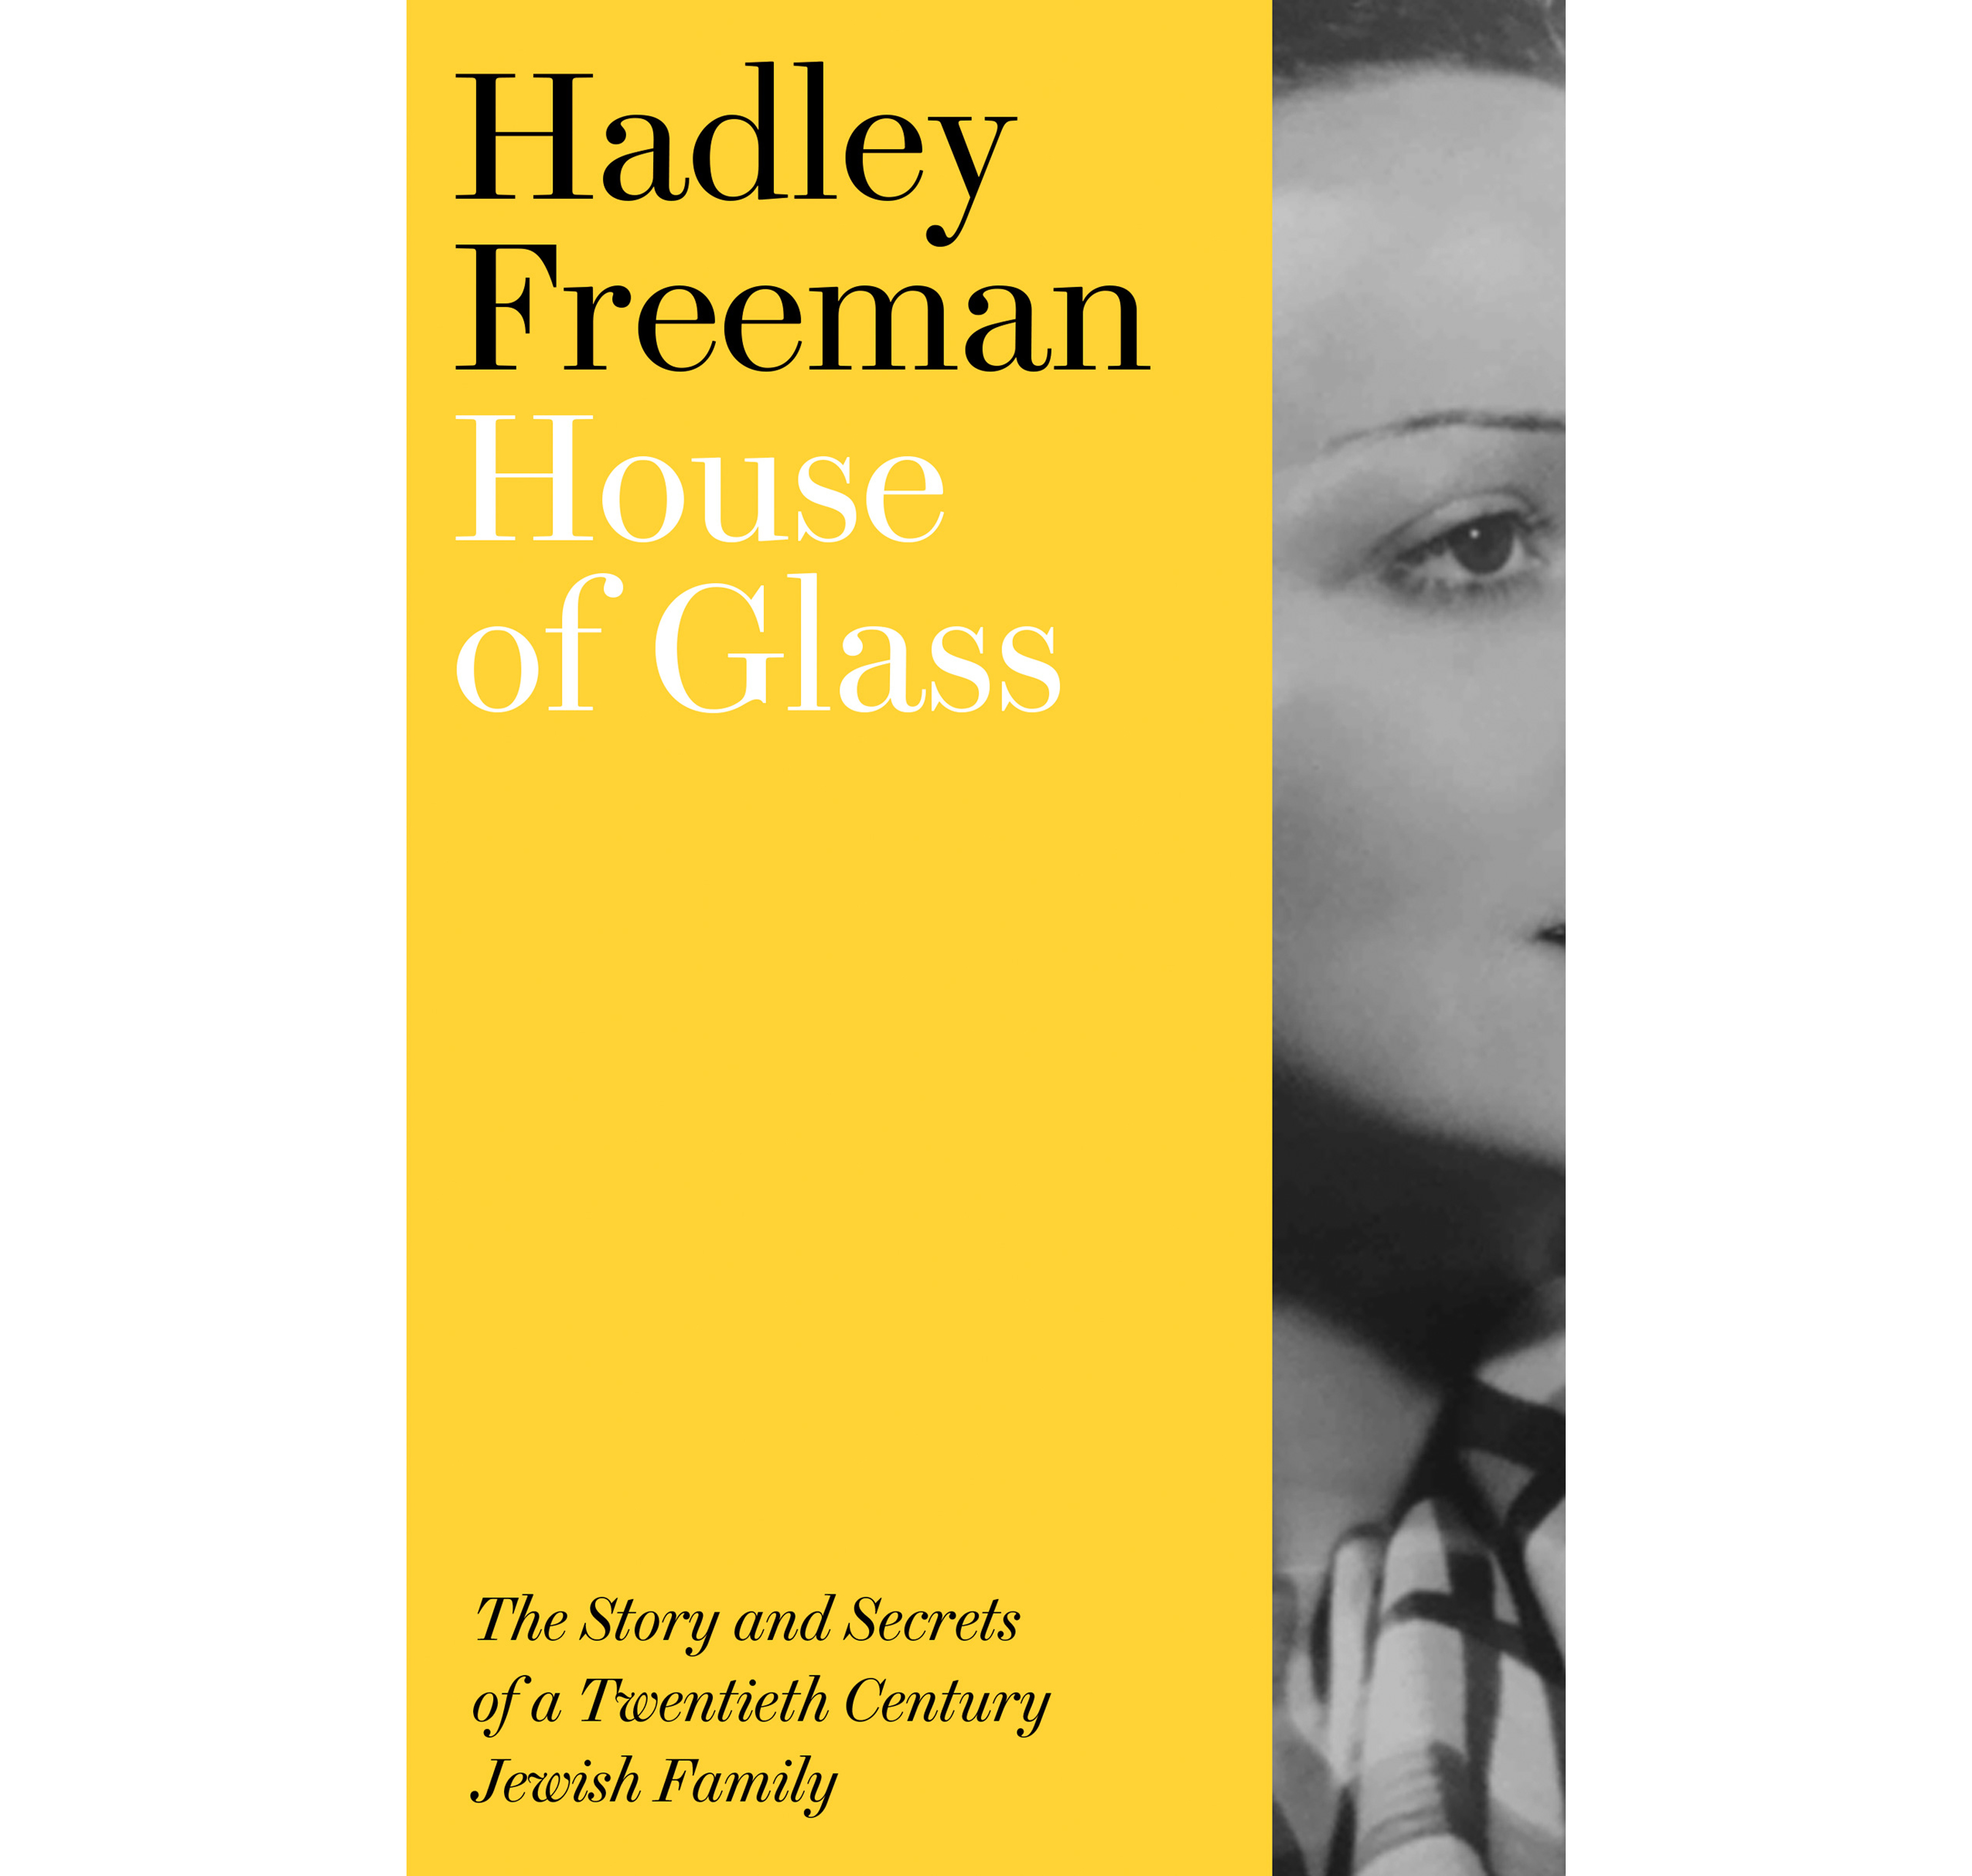 House of Glass by Hadley Freeman (4th Estate/PA)